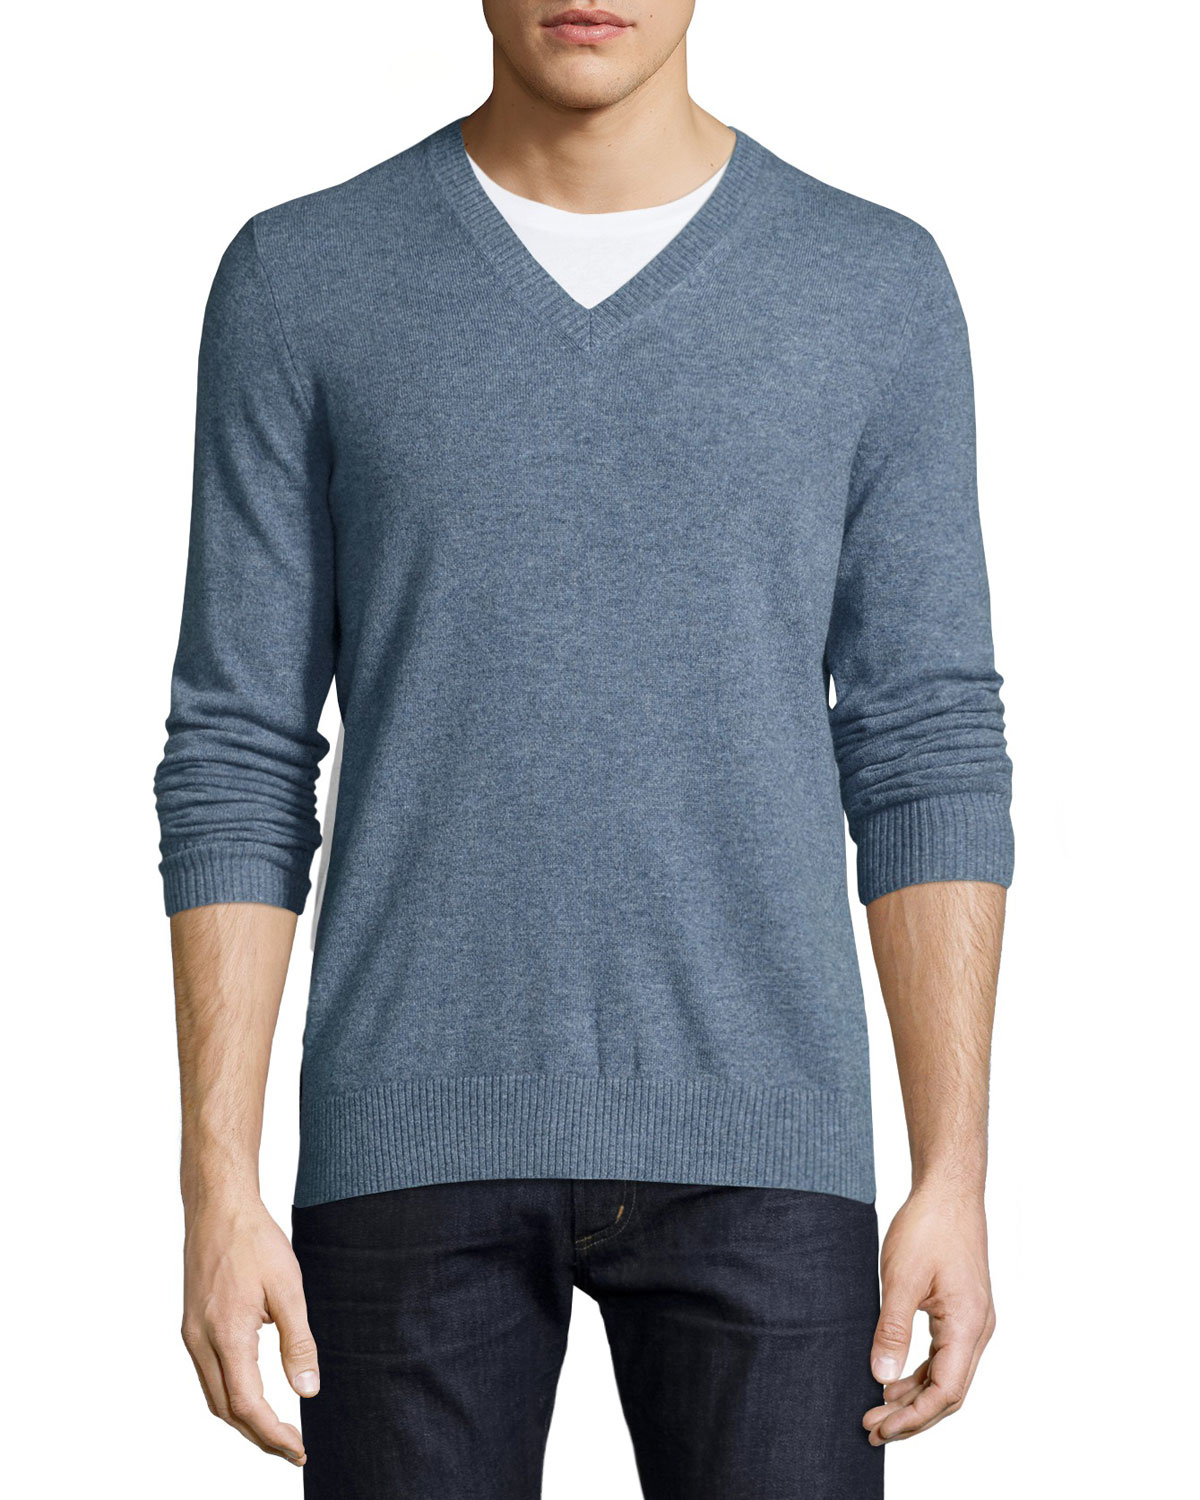 neiman marcus cashmere v neck pullover sweater in blue for men lyst. Black Bedroom Furniture Sets. Home Design Ideas